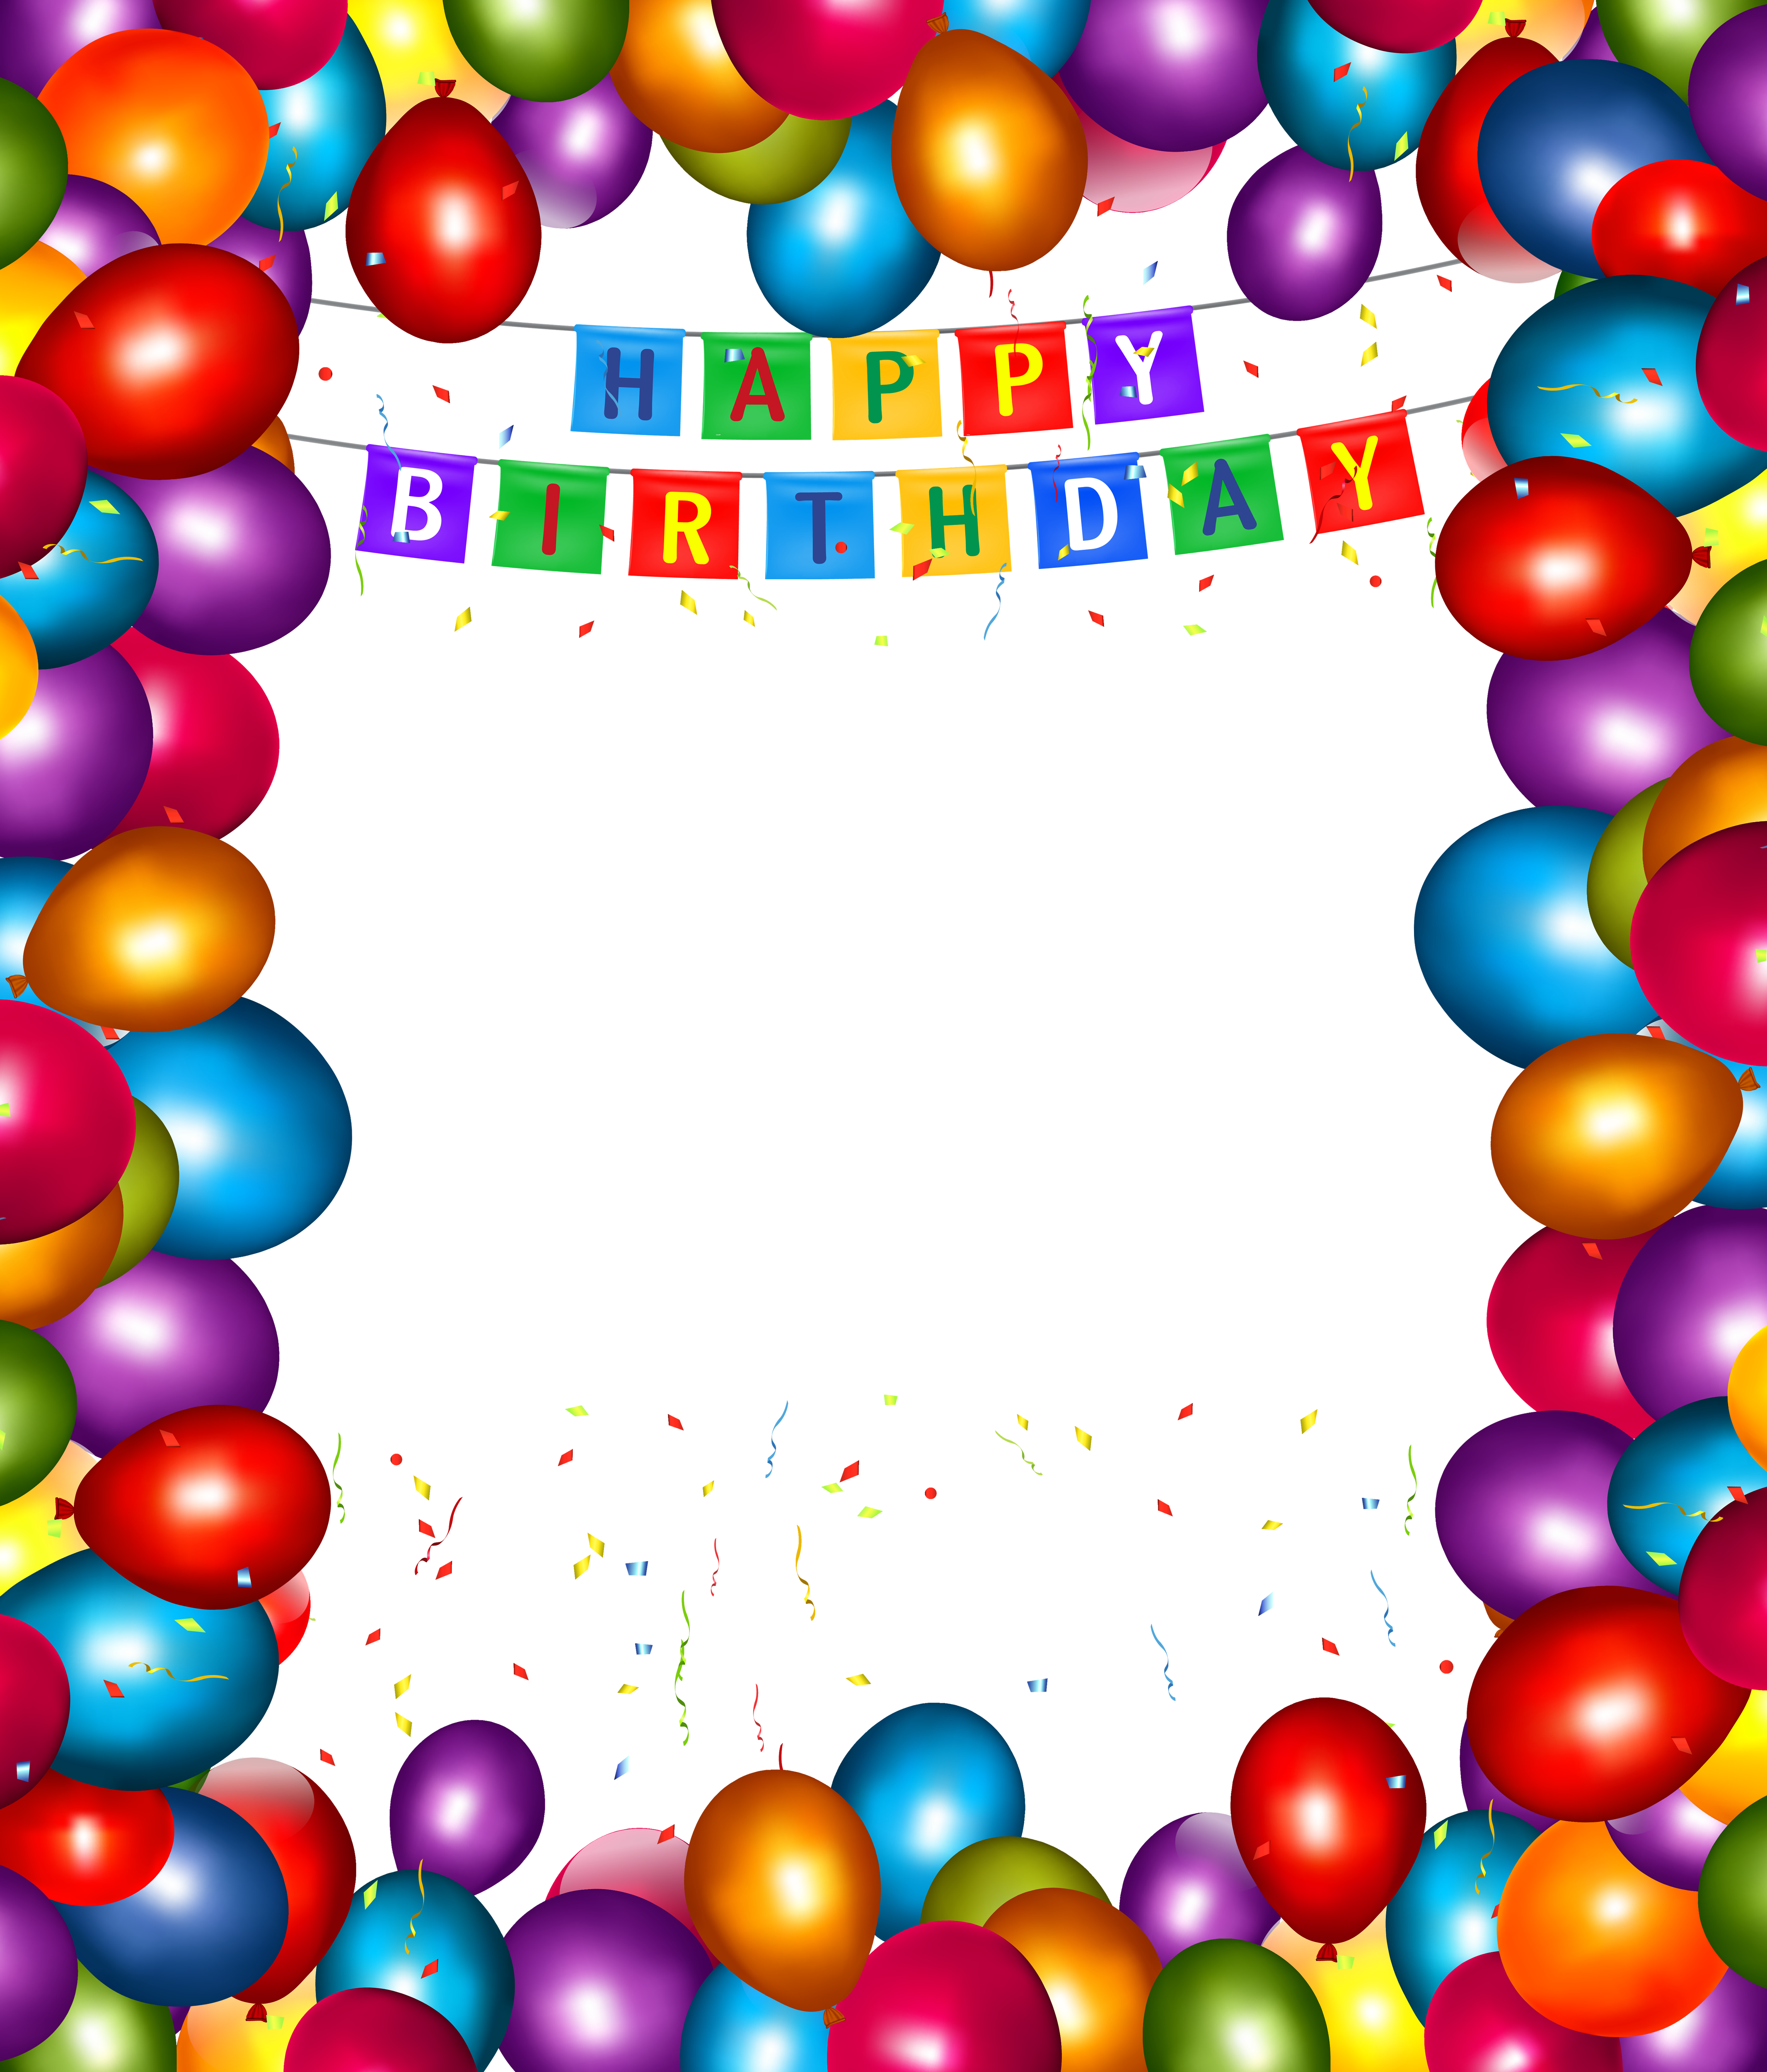 Birthday Party Transparent PNG Pictures - Free Icons and PNG Backgrounds